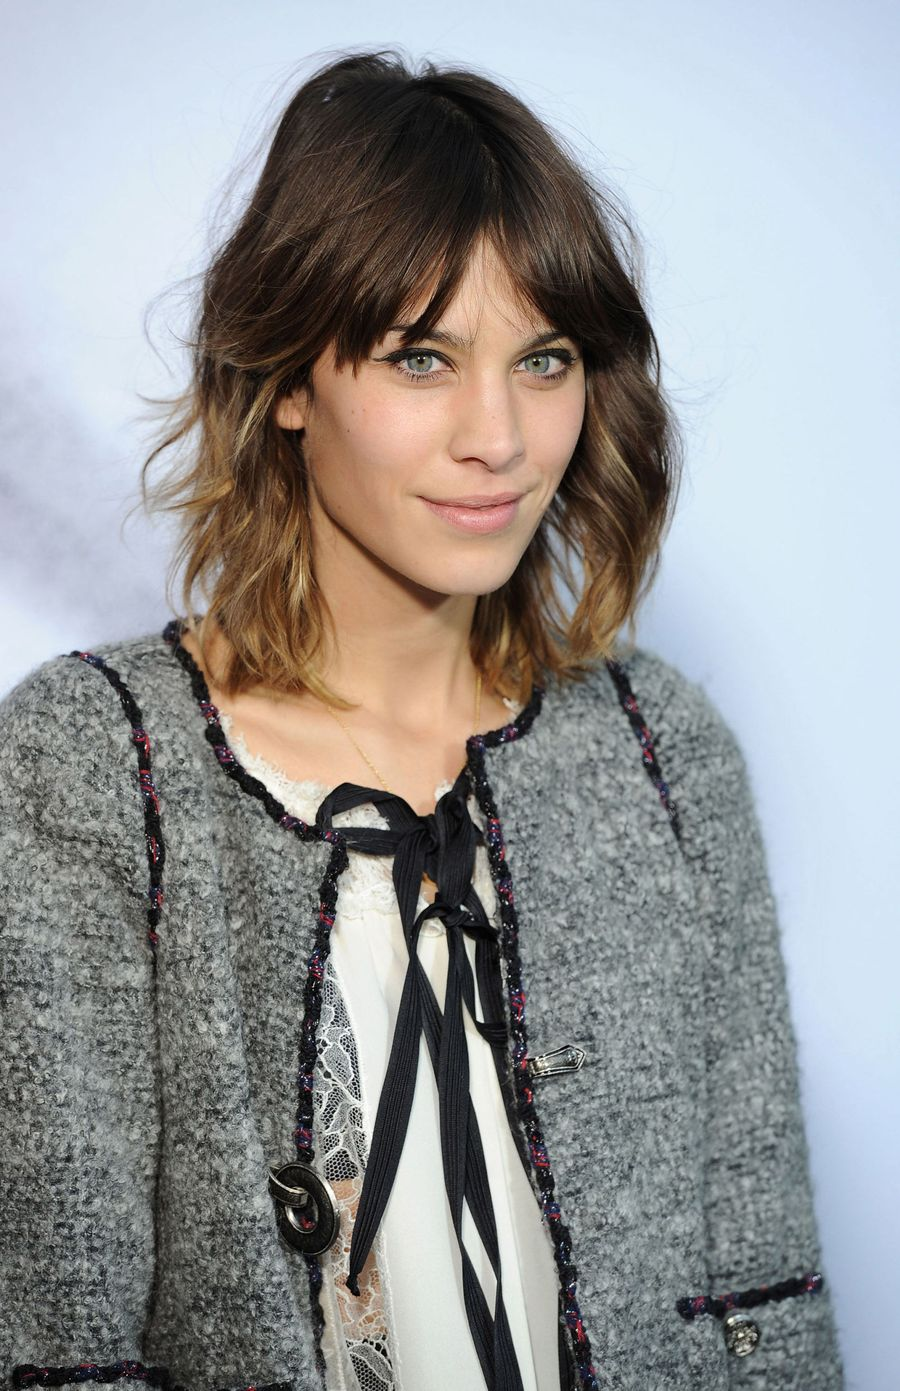 Cool hair style with feathered bangs ideas 58